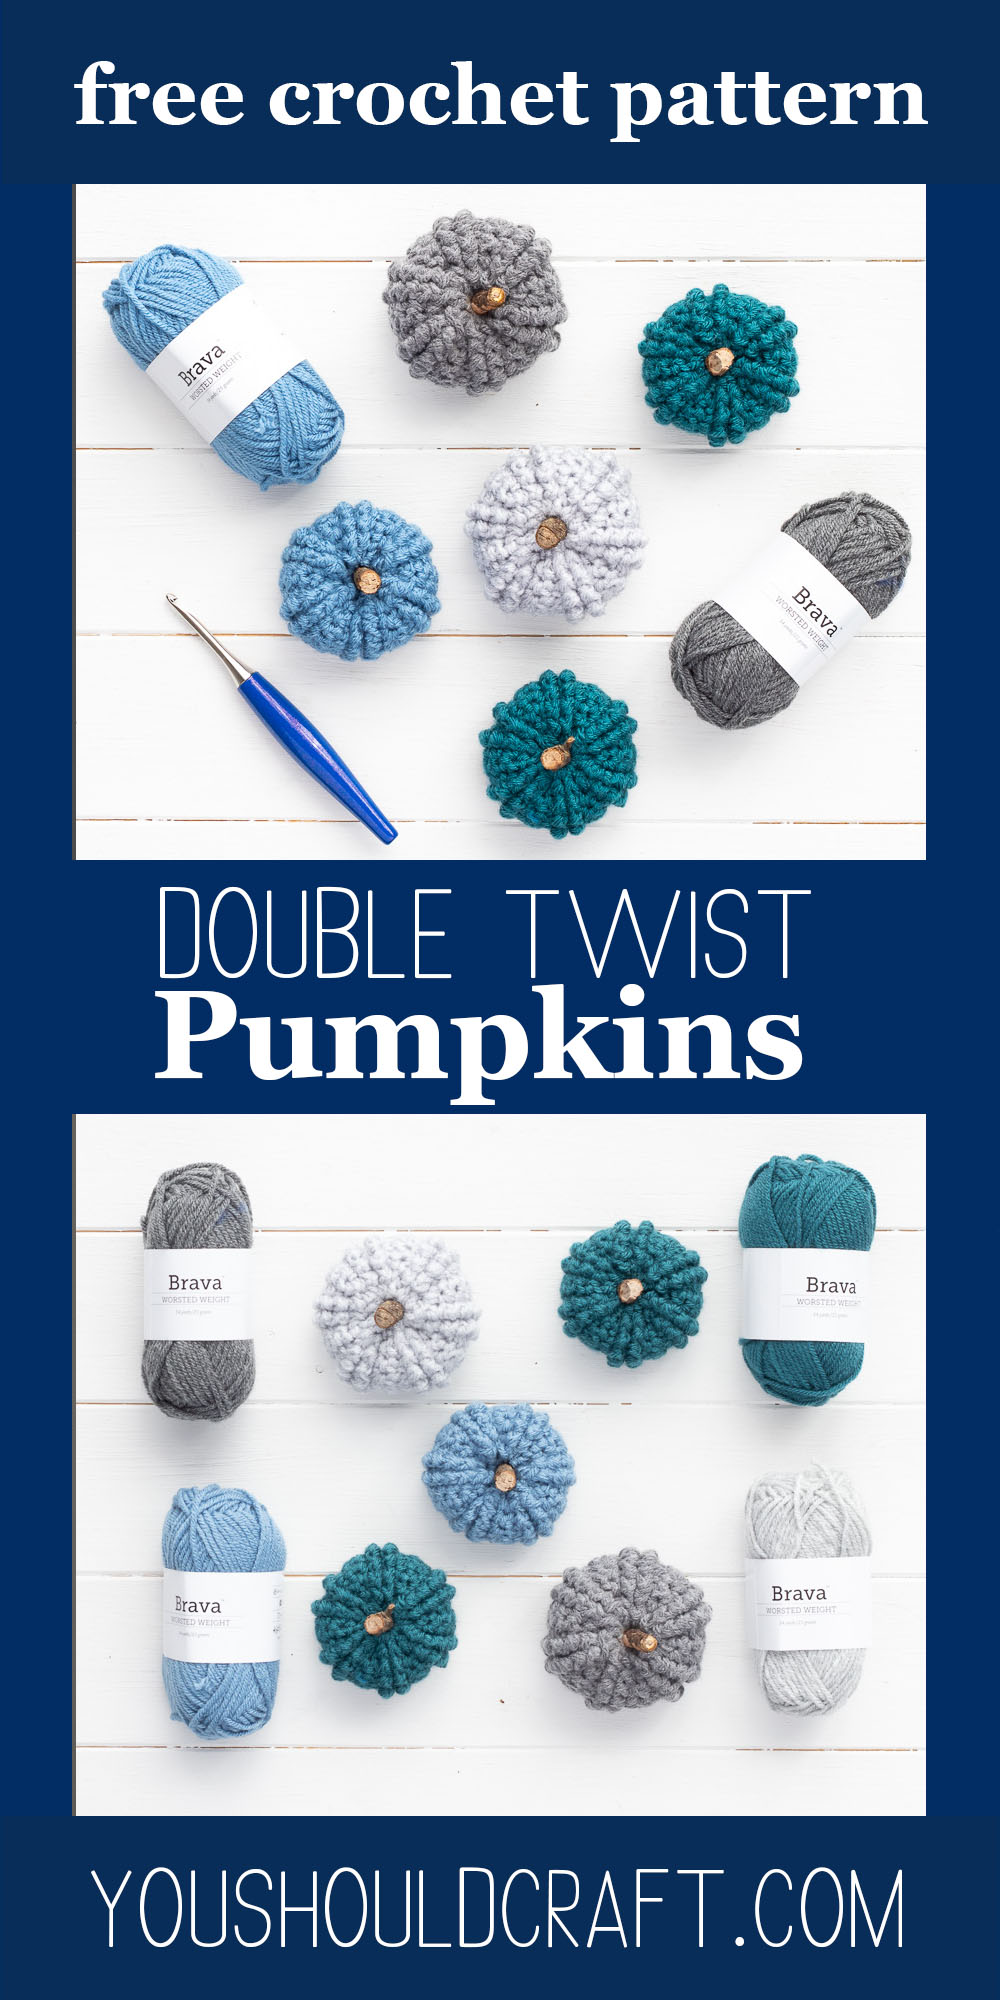 "collage of two images of brava worsted yarn and crochet pumpkins, with text overlay ""free crochet pattern - double twist pumpkins - youshouldcraft.com"""